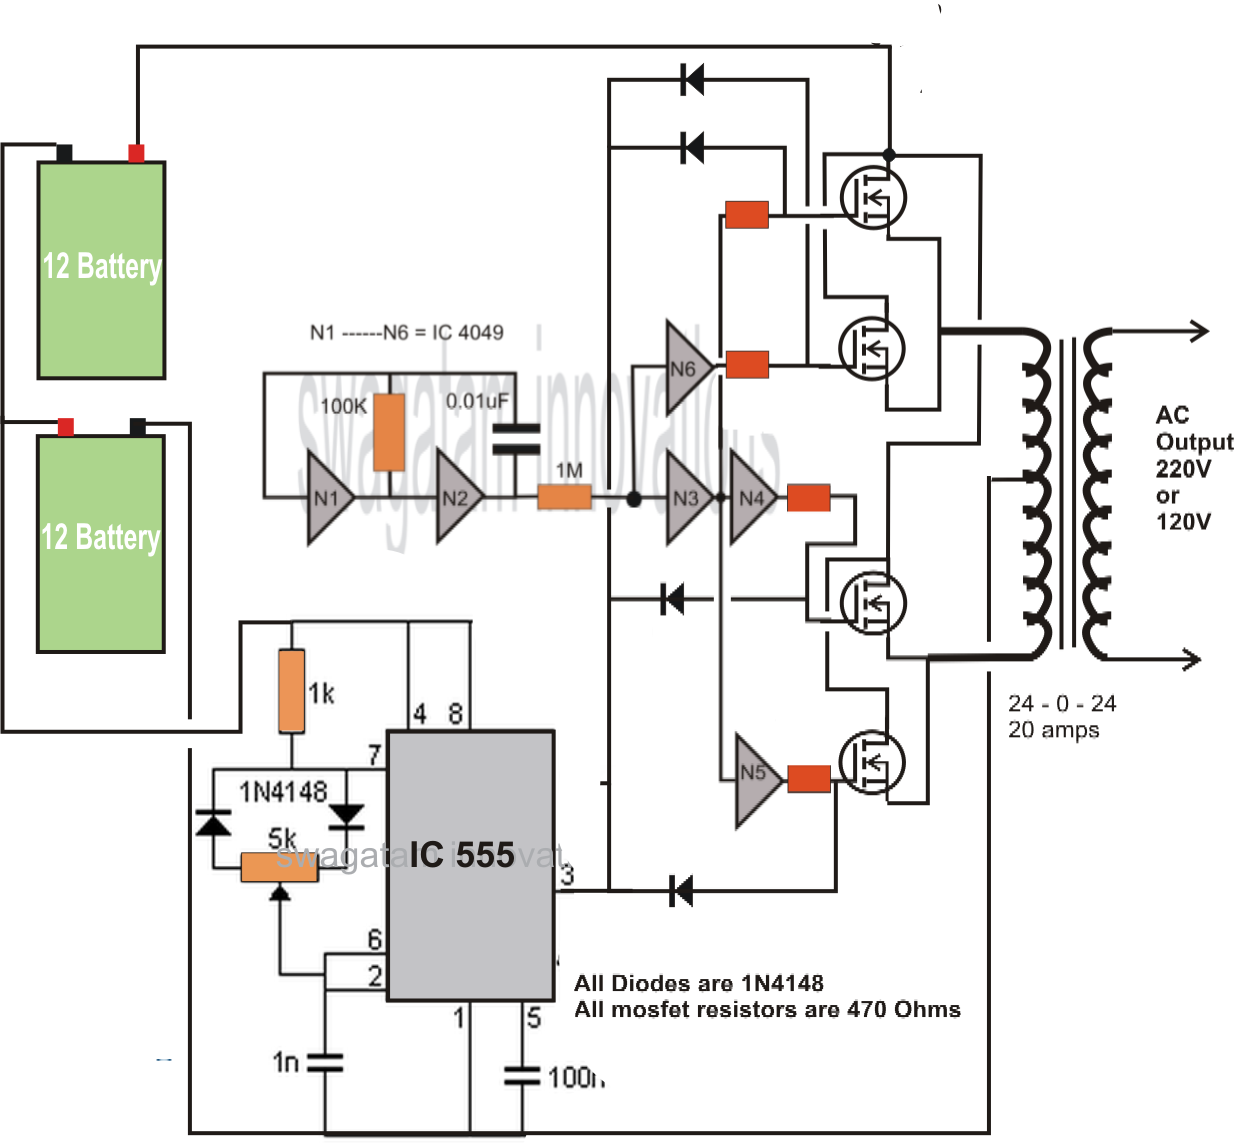 Transformerless Inverter Dc To Ac Schematic on dc to ac converter walmart